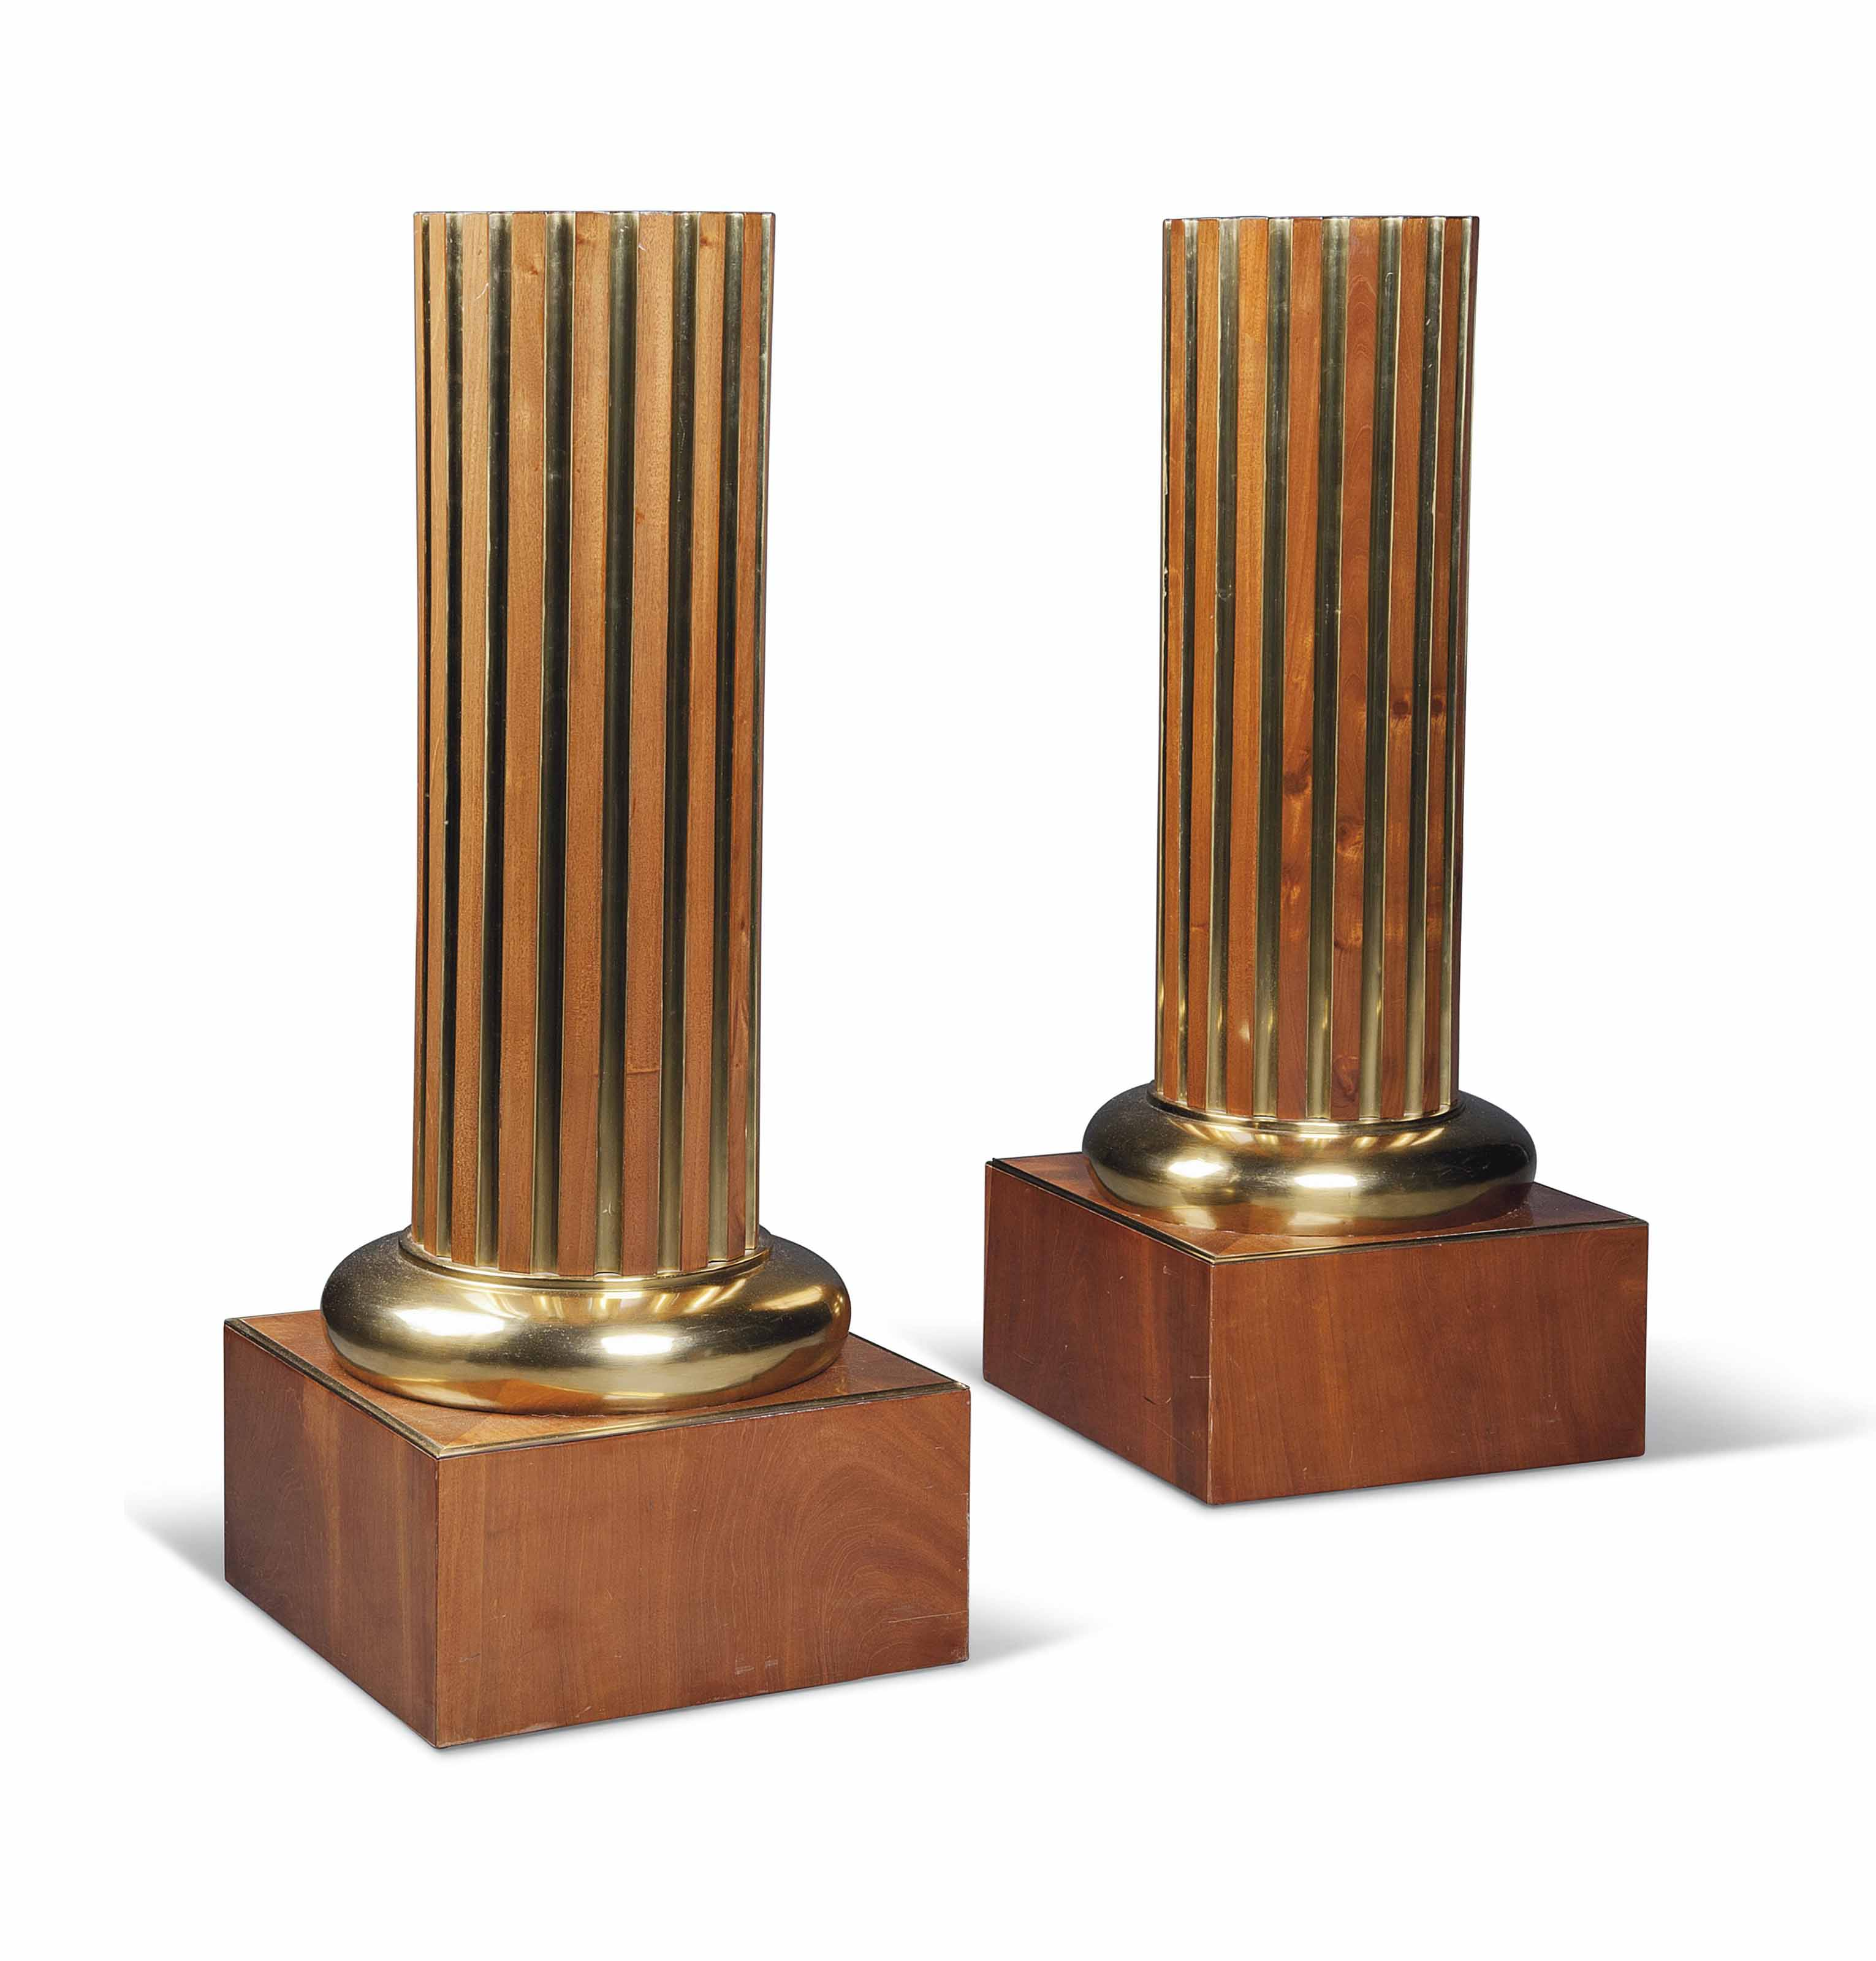 A PAIR OF BALTIC BRASS-MOUNTED